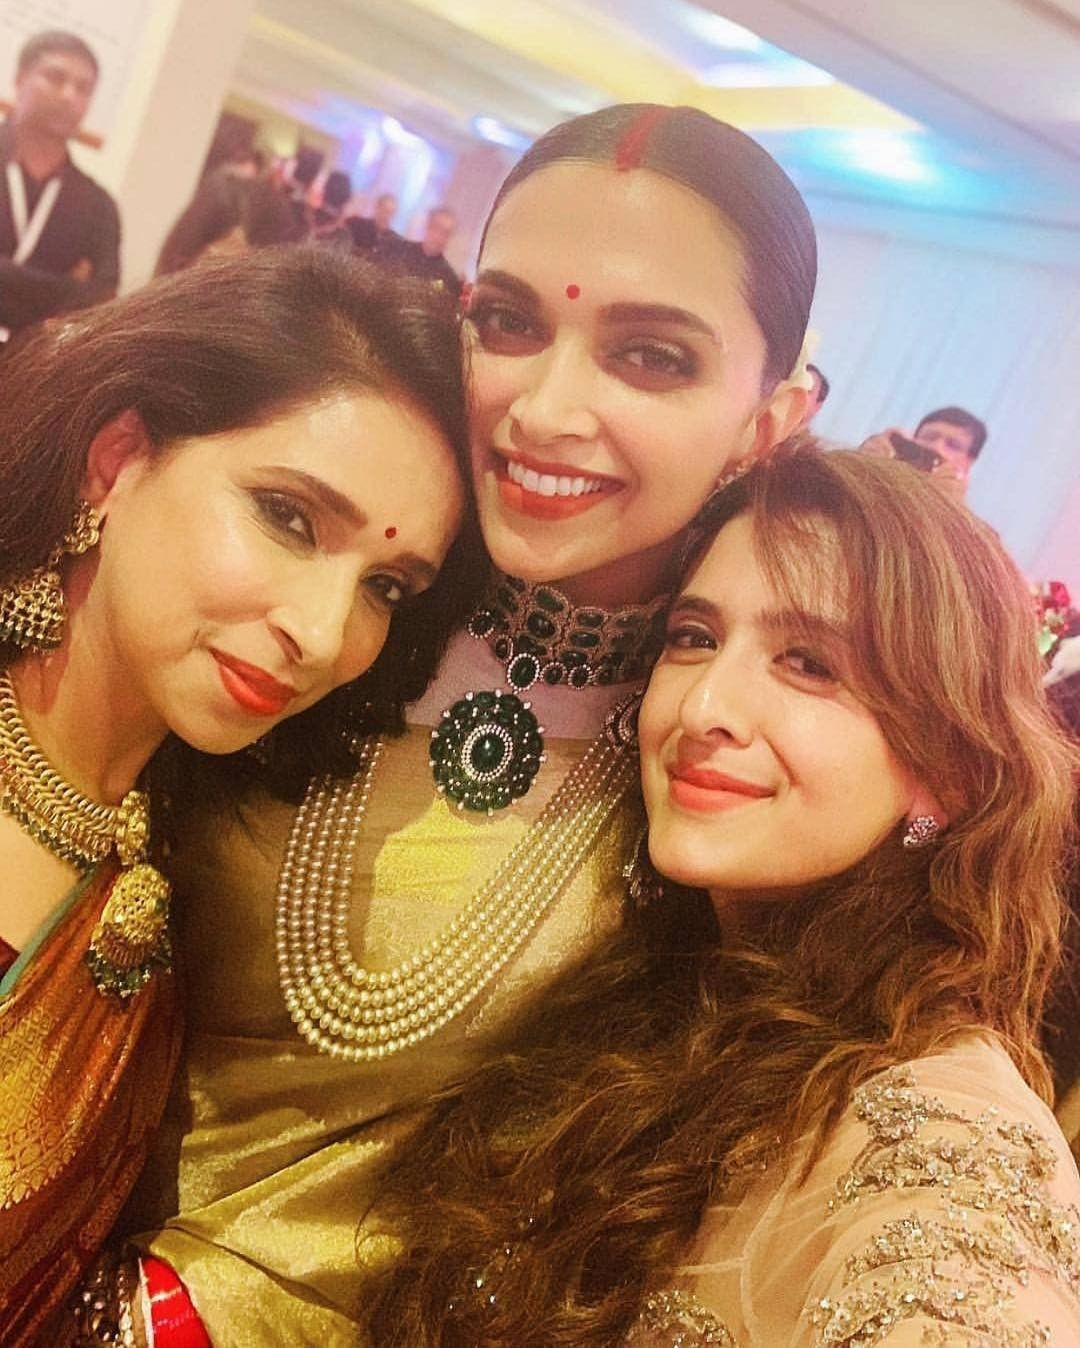 Deepveer Deepika Padukone With Her Mother At Her Wedding Reception Bangalore Bollywood Celebrities Deepika Padukone Deepika Ranveer